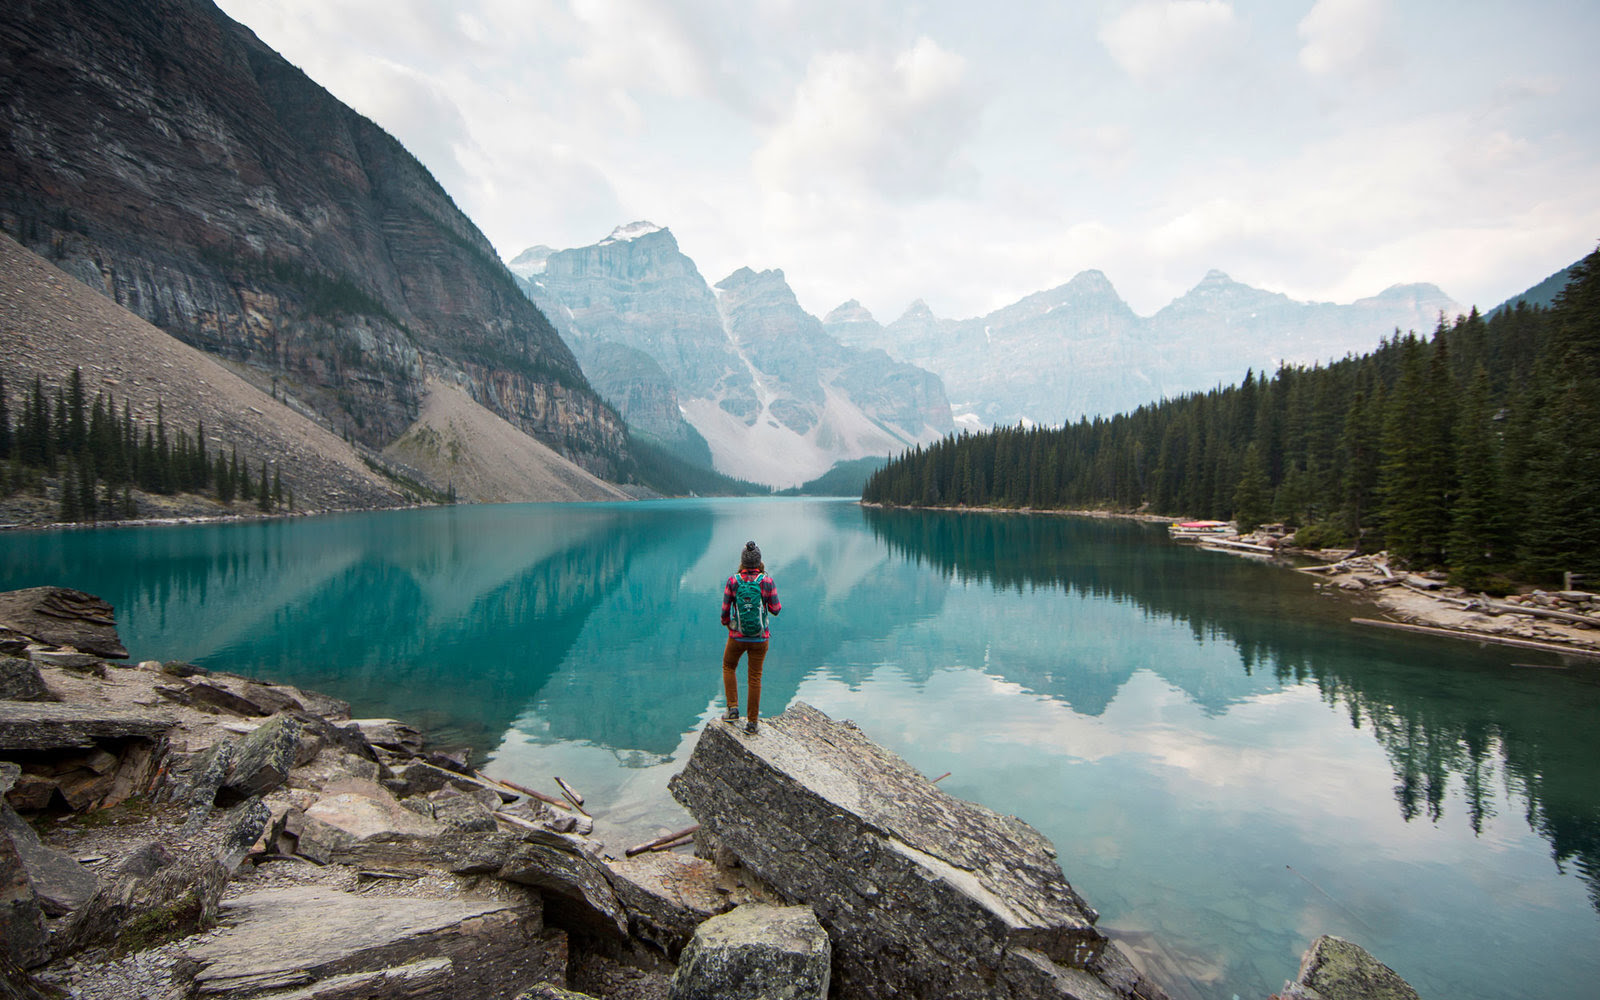 8 Great Tips for 'Re-Entering' Normal Life After a Solo ...